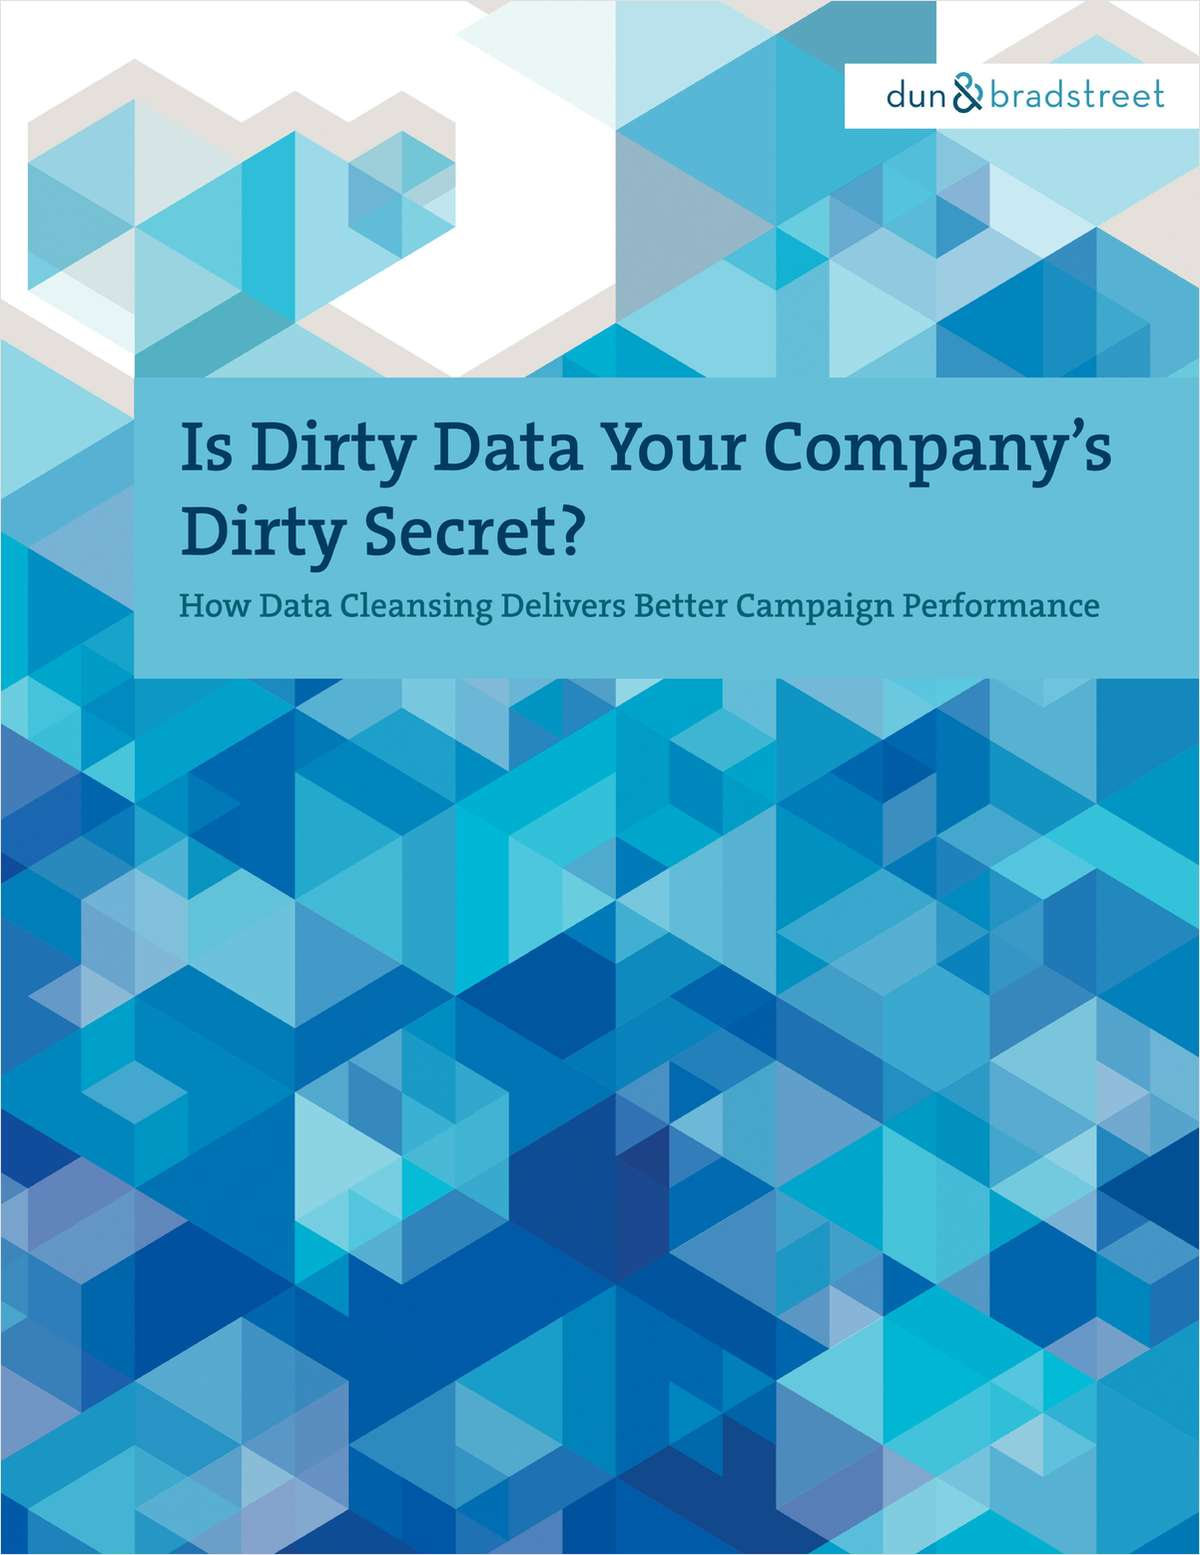 Is Dirty Data Your Company's Dirty Secret?